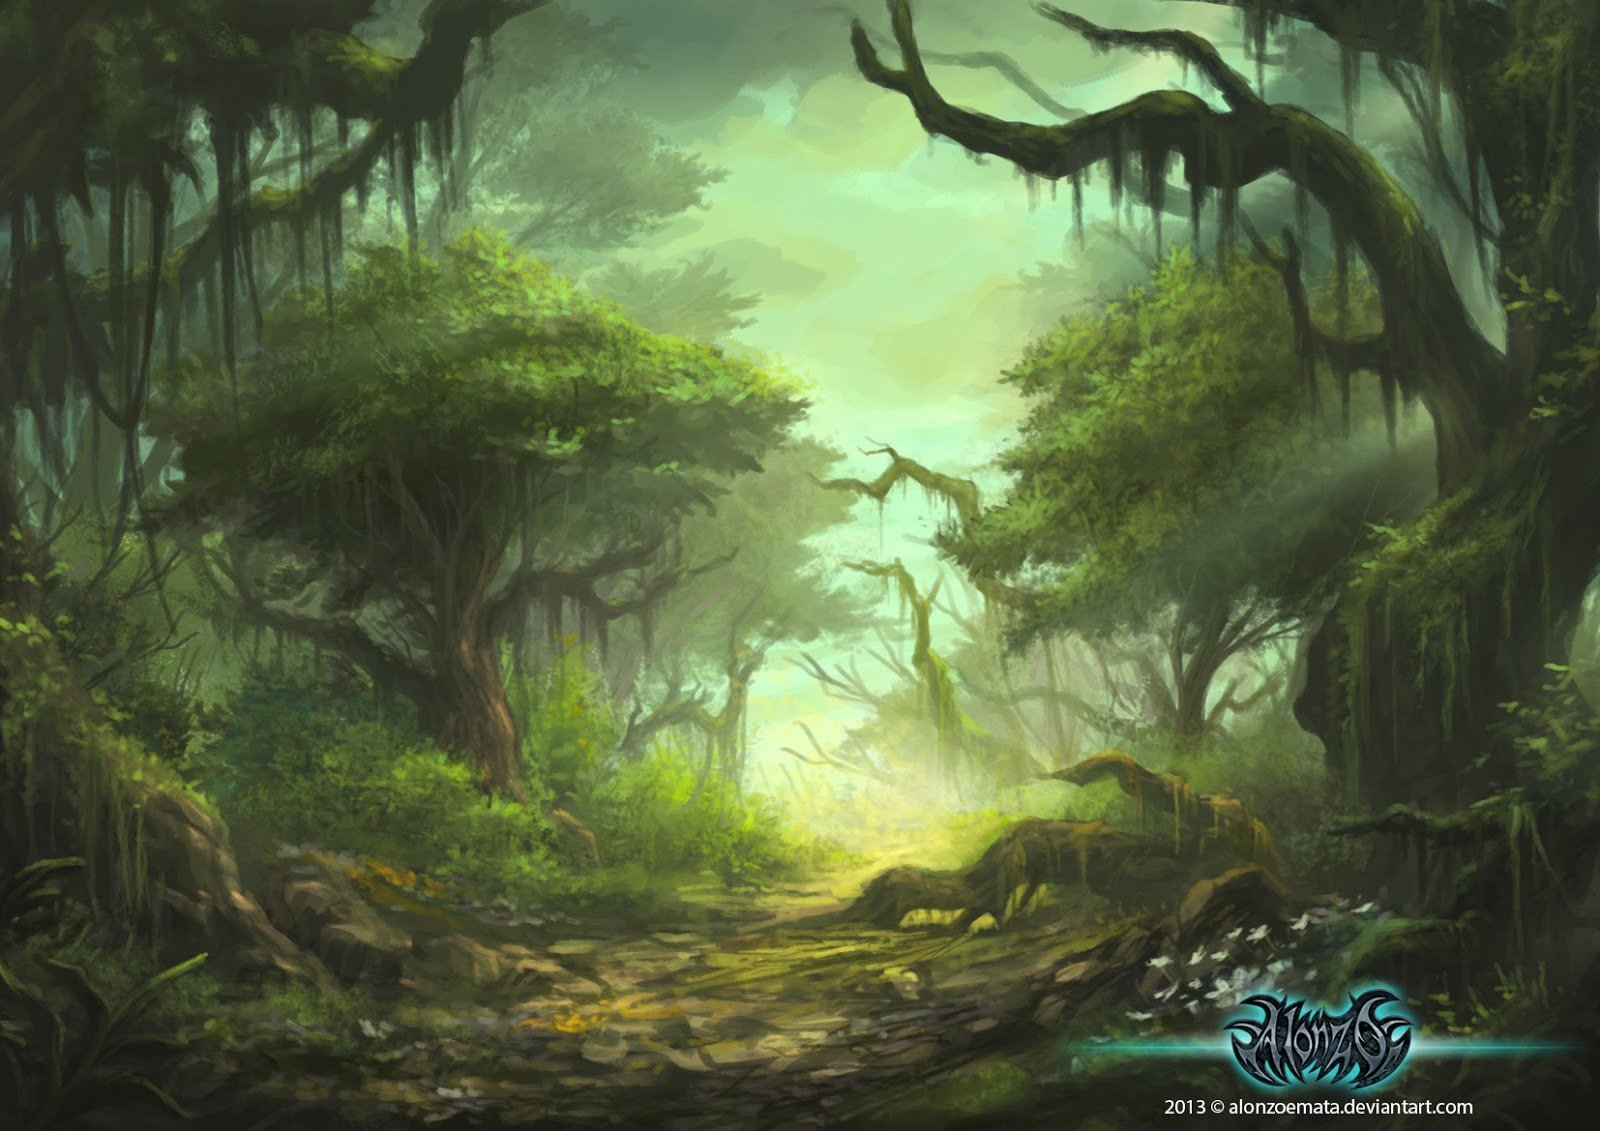 Alonzo emata forest by adriellem d79zy28